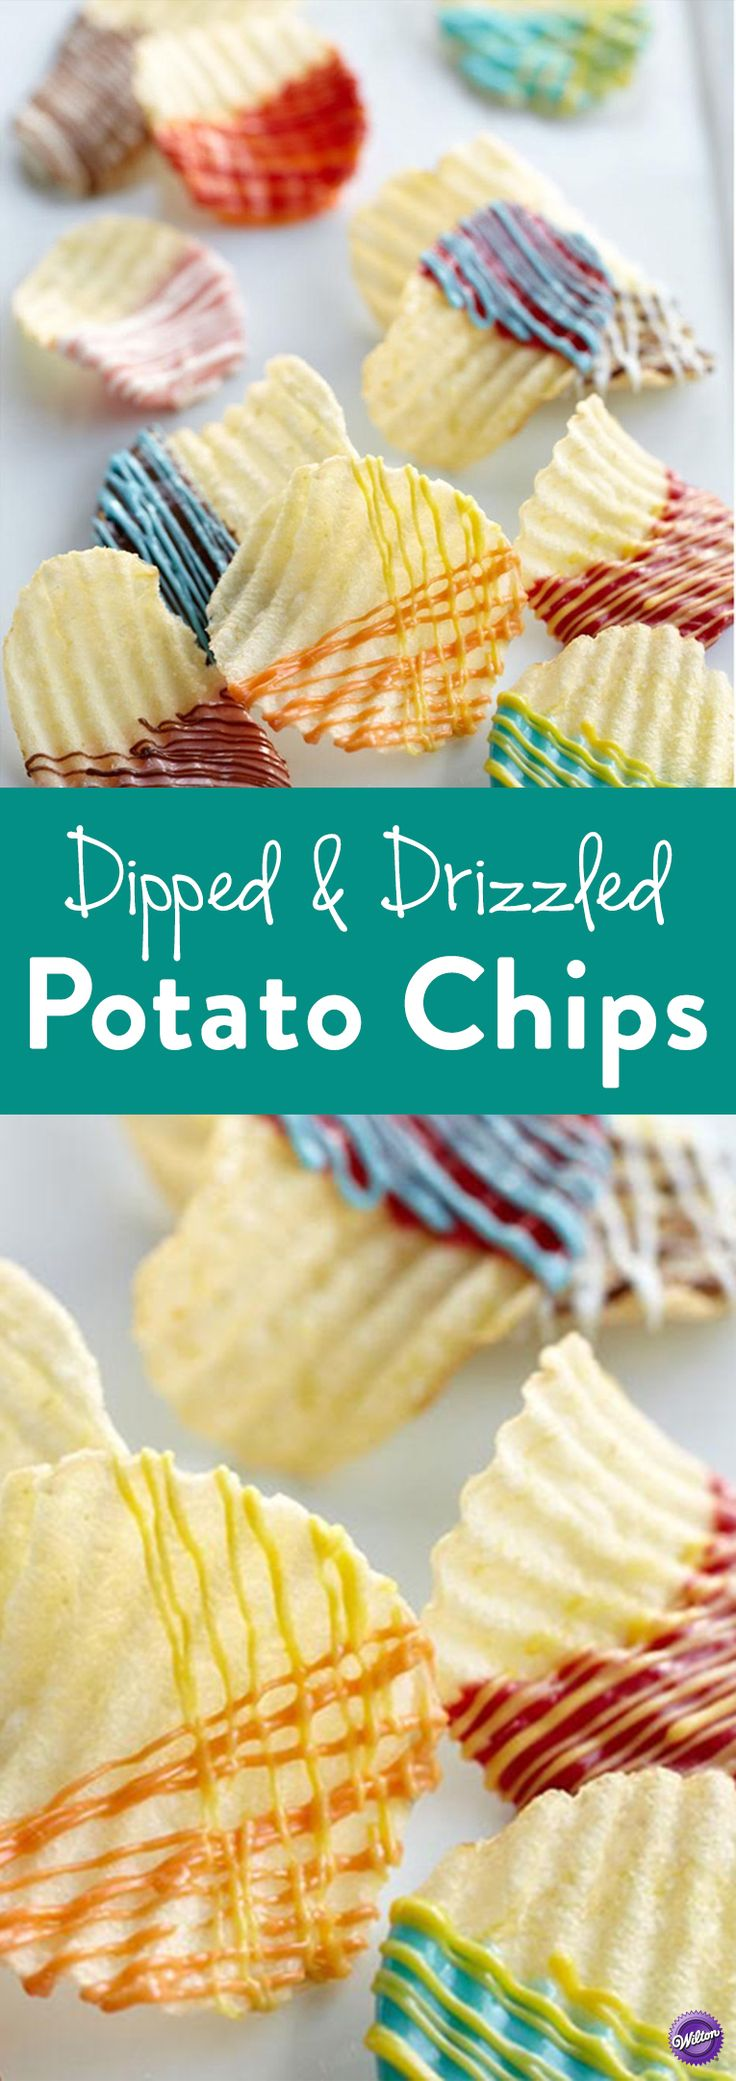 How to Make Dipped & Drizzled Potato Chips - This is such an easy party snack! Wilton Candy Melts candy gives your favorite ruffled chips that extra touch of color to go with the crunch and creates a great salty-sweet combination.